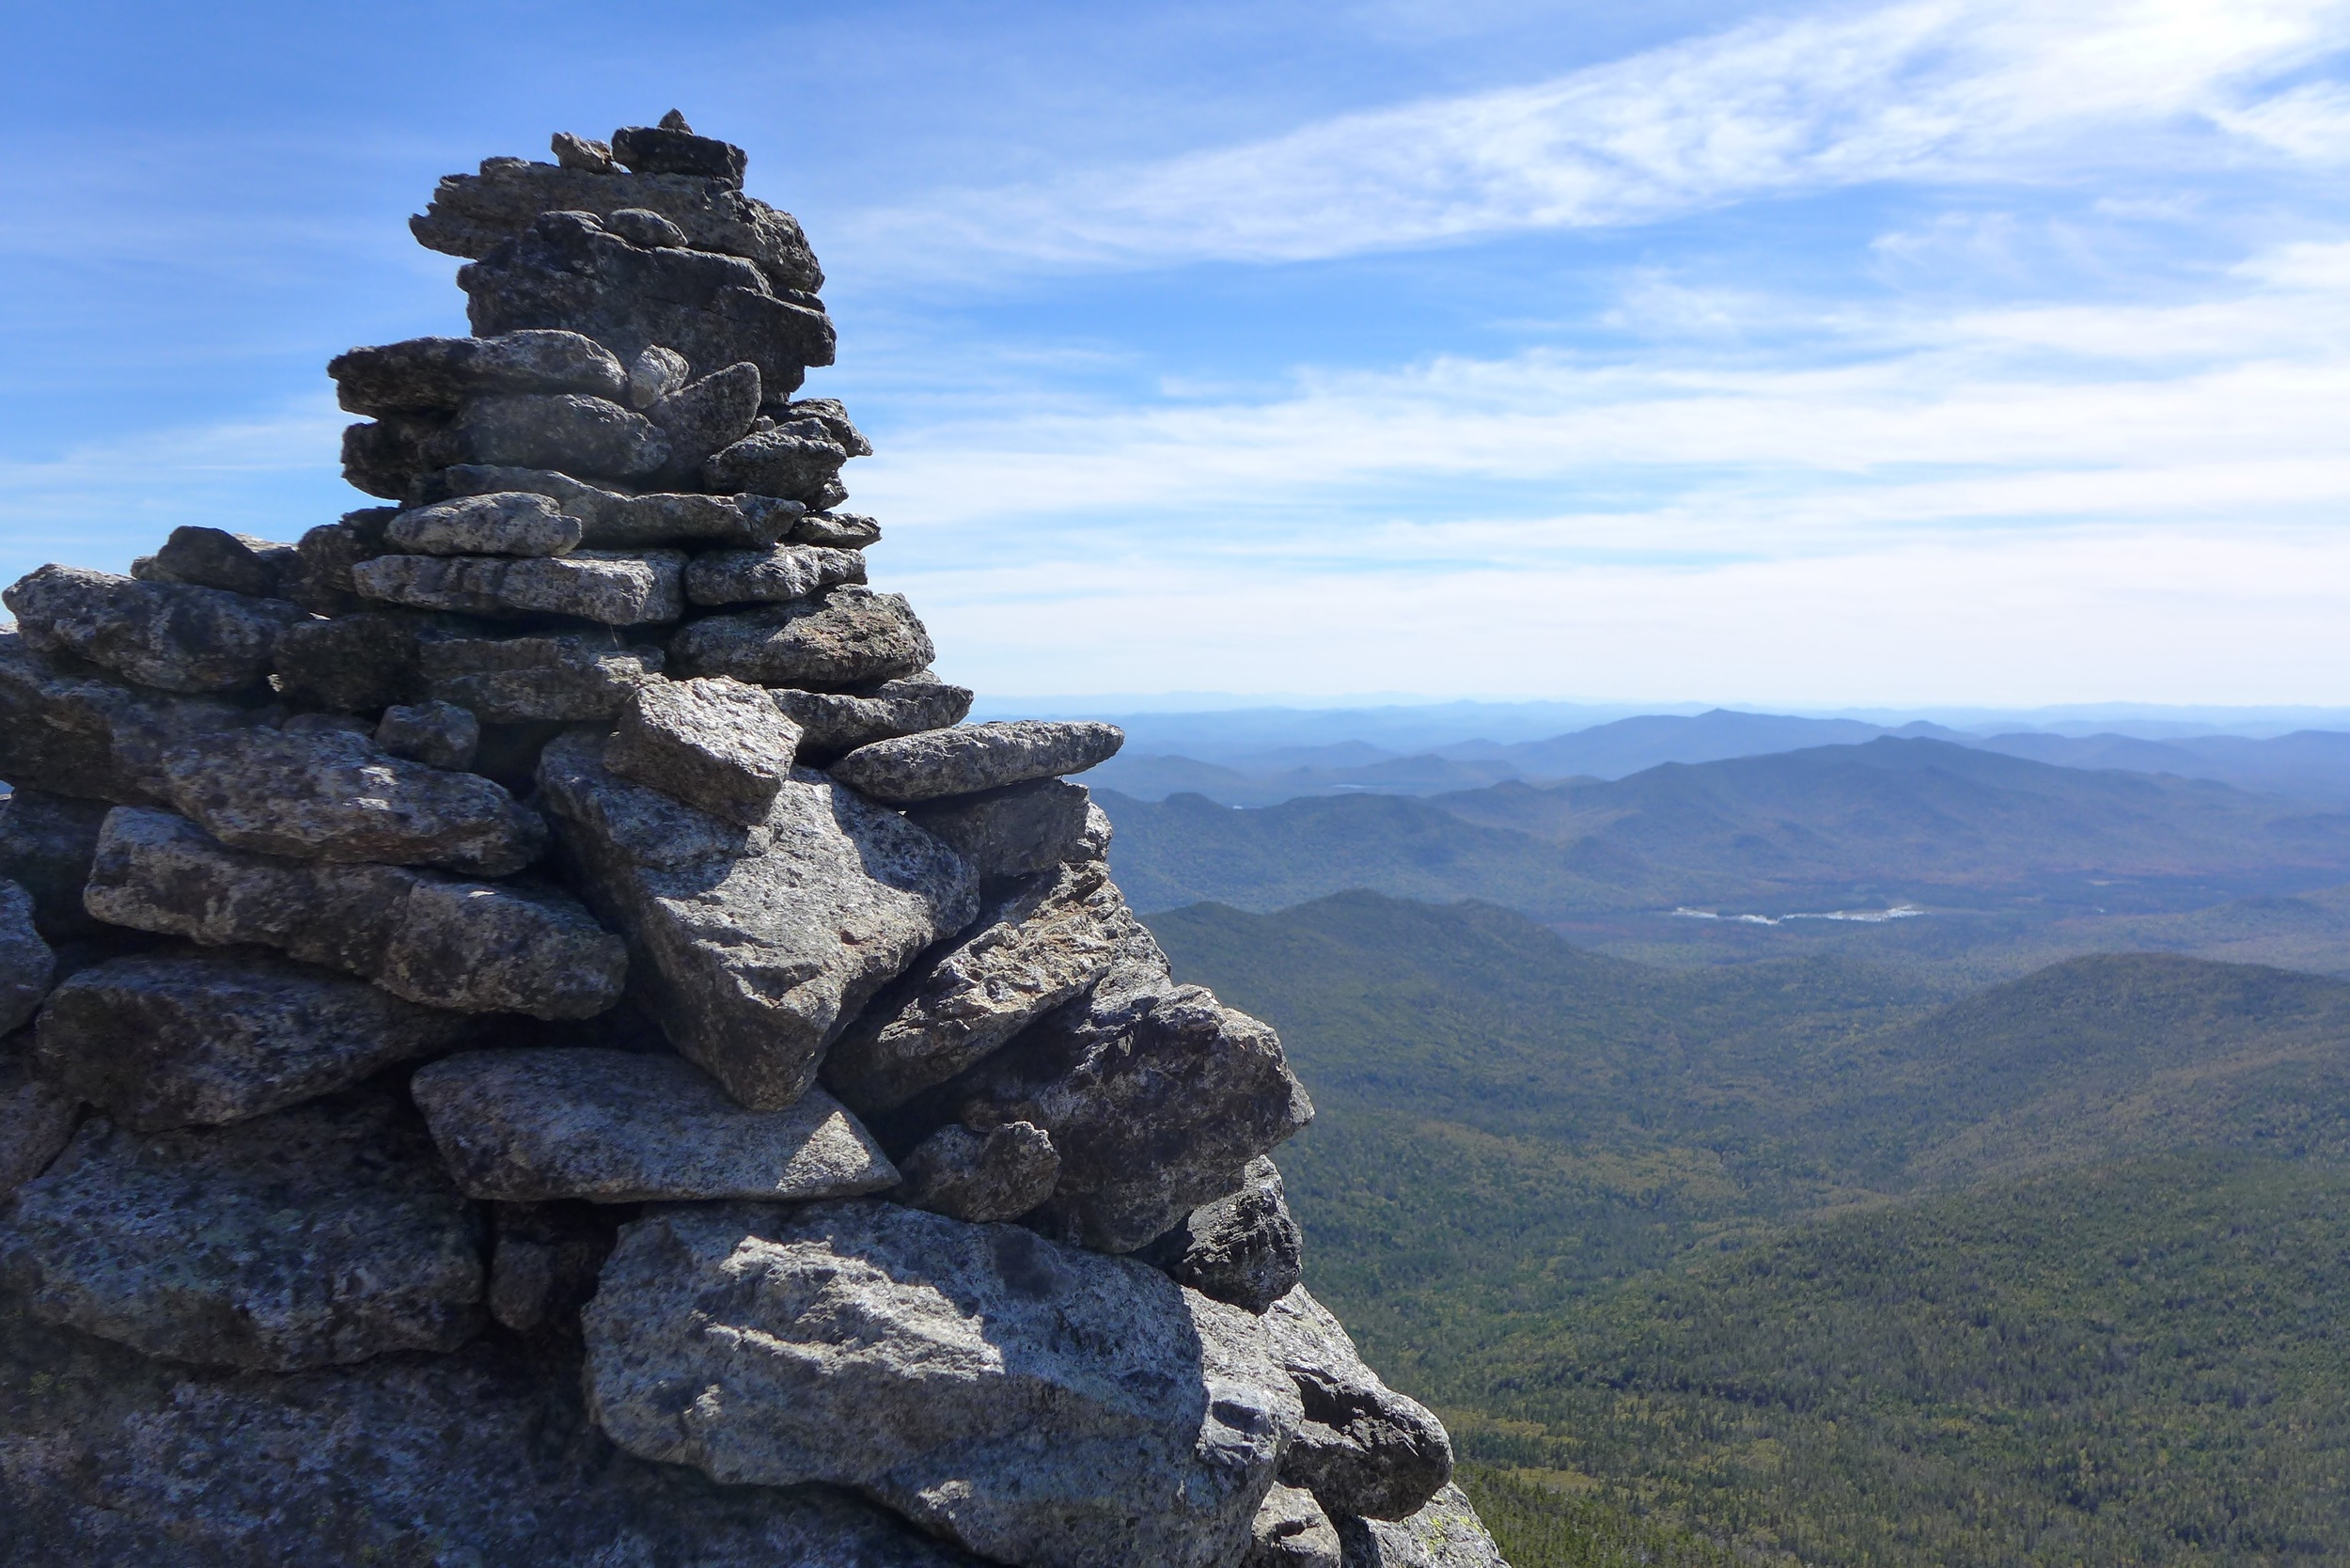 Cairns to show you the way, blue ridges to get you lost in your thoughts on top of Mount Marcy, High peaks region of the Adirdondacks @ ateliermileaway.com